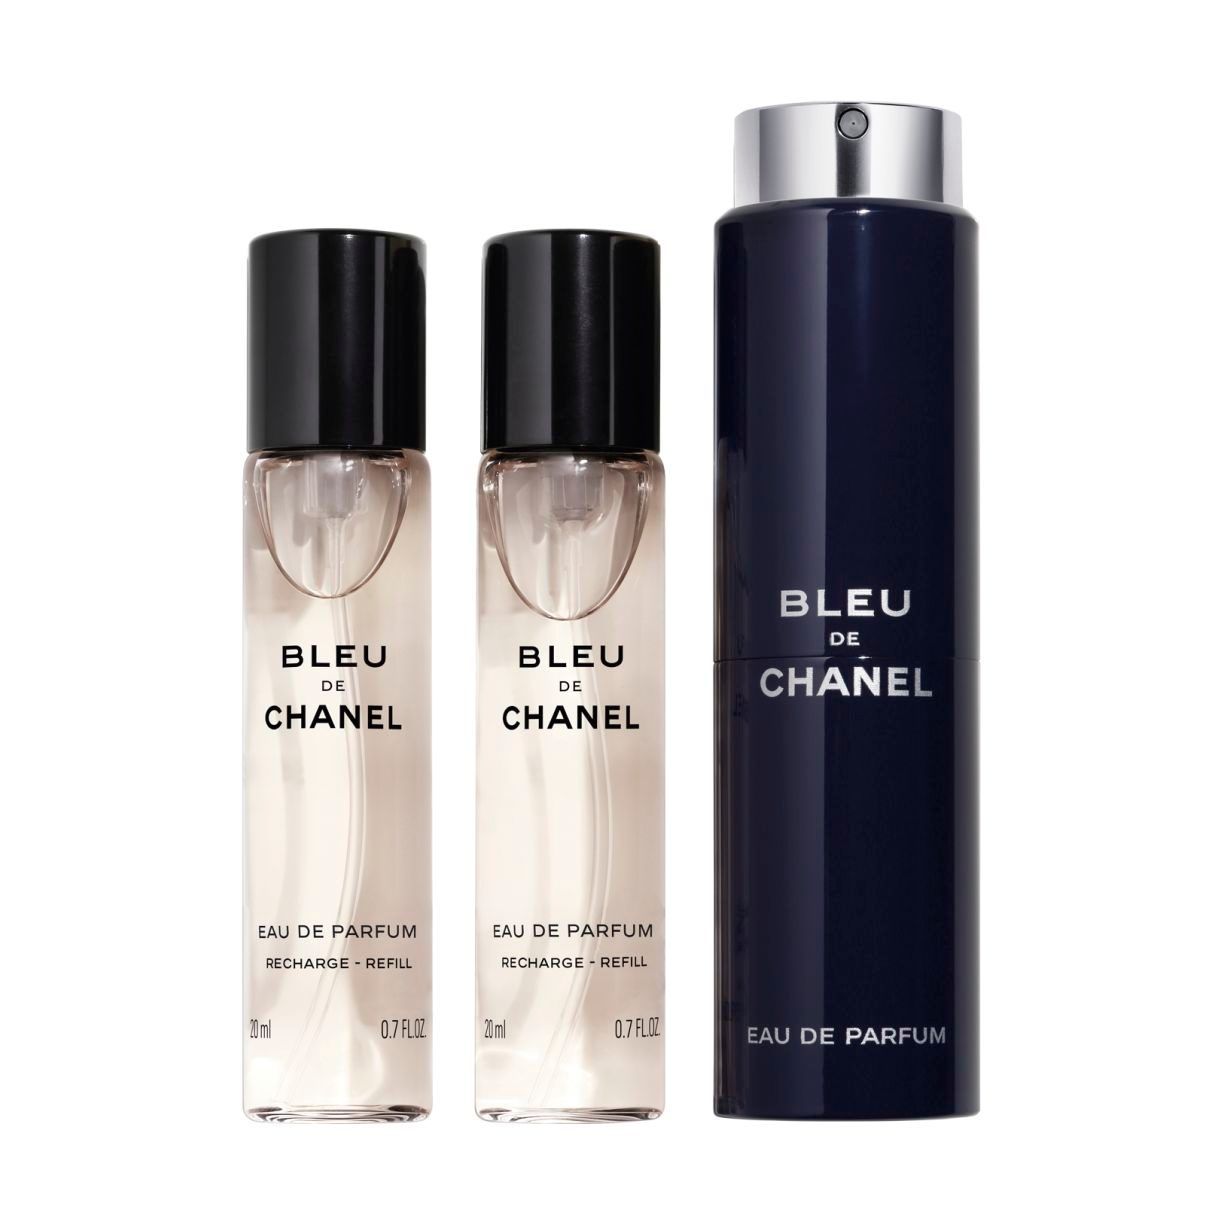 BLEU DE CHANEL EAU DE PARFUM REFILLABLE TRAVEL SPRAY 3 x 20ml